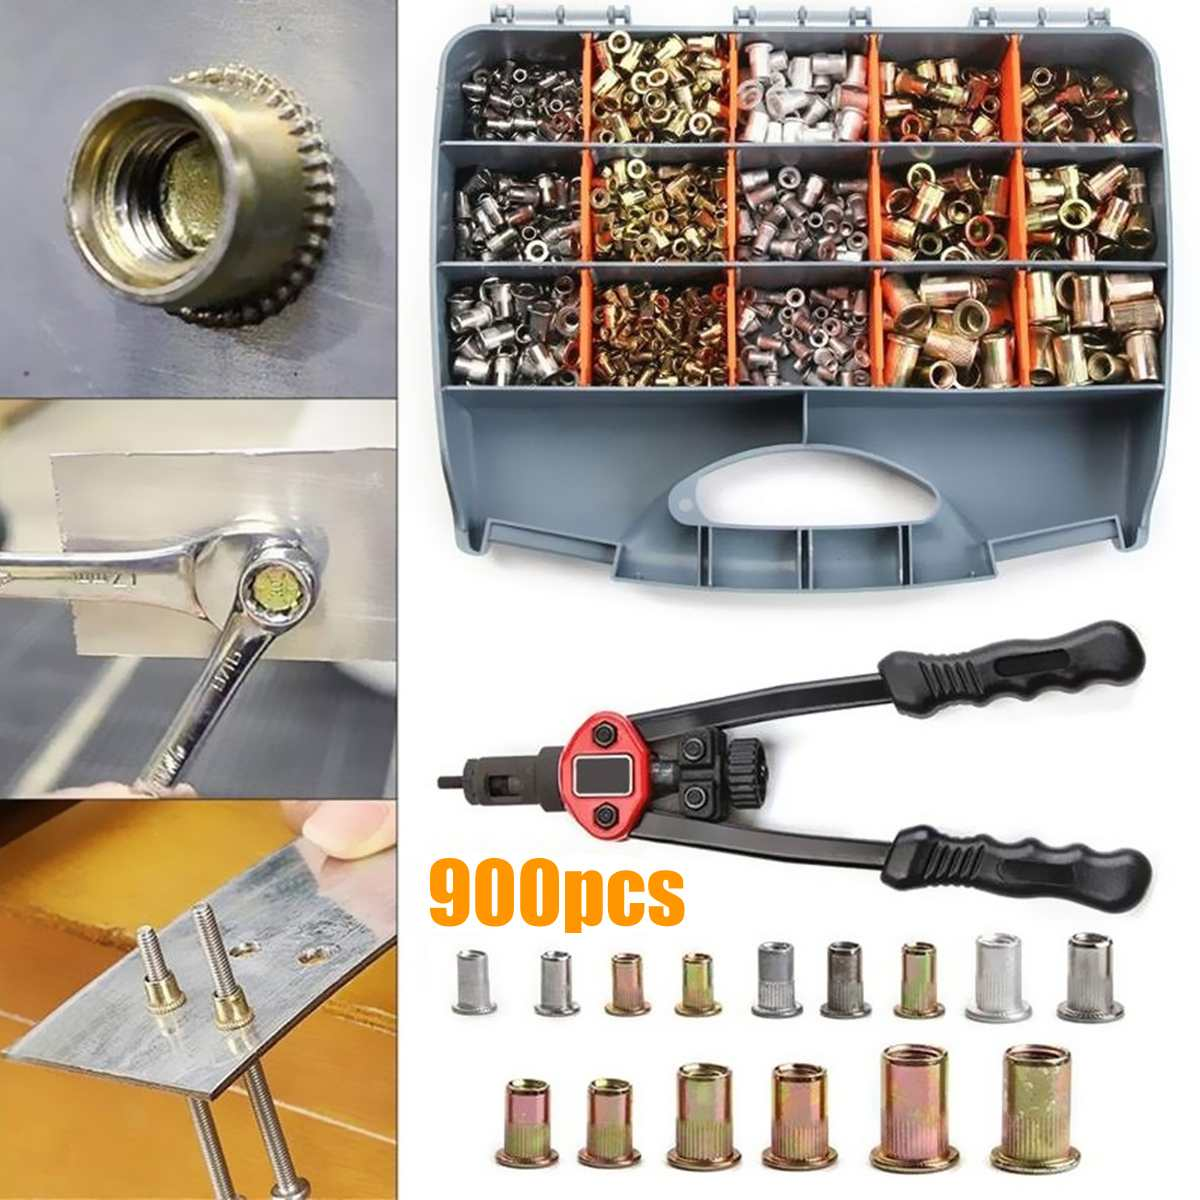 900/1000/1200Pcs M3-M12 Riveter Guns Tools Set Metal Nut Riveting Kits Rivnut Manual Pull Nut Rivet Nutsert Insert Accessories